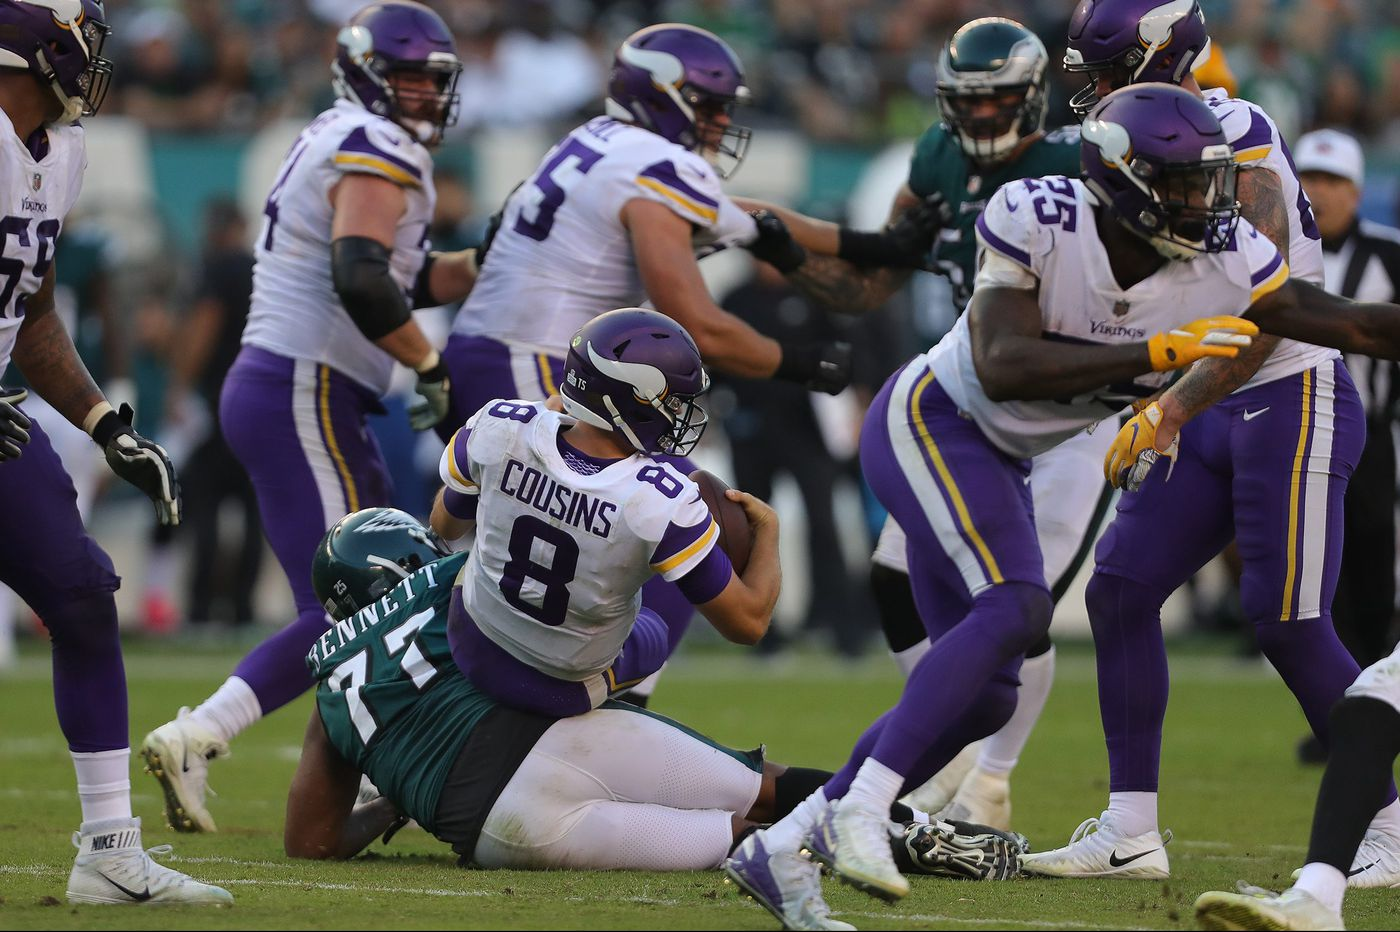 Eagles frustrated by Michael Bennett roughing-the-passer penalty in loss to Vikings   Jeff McLane